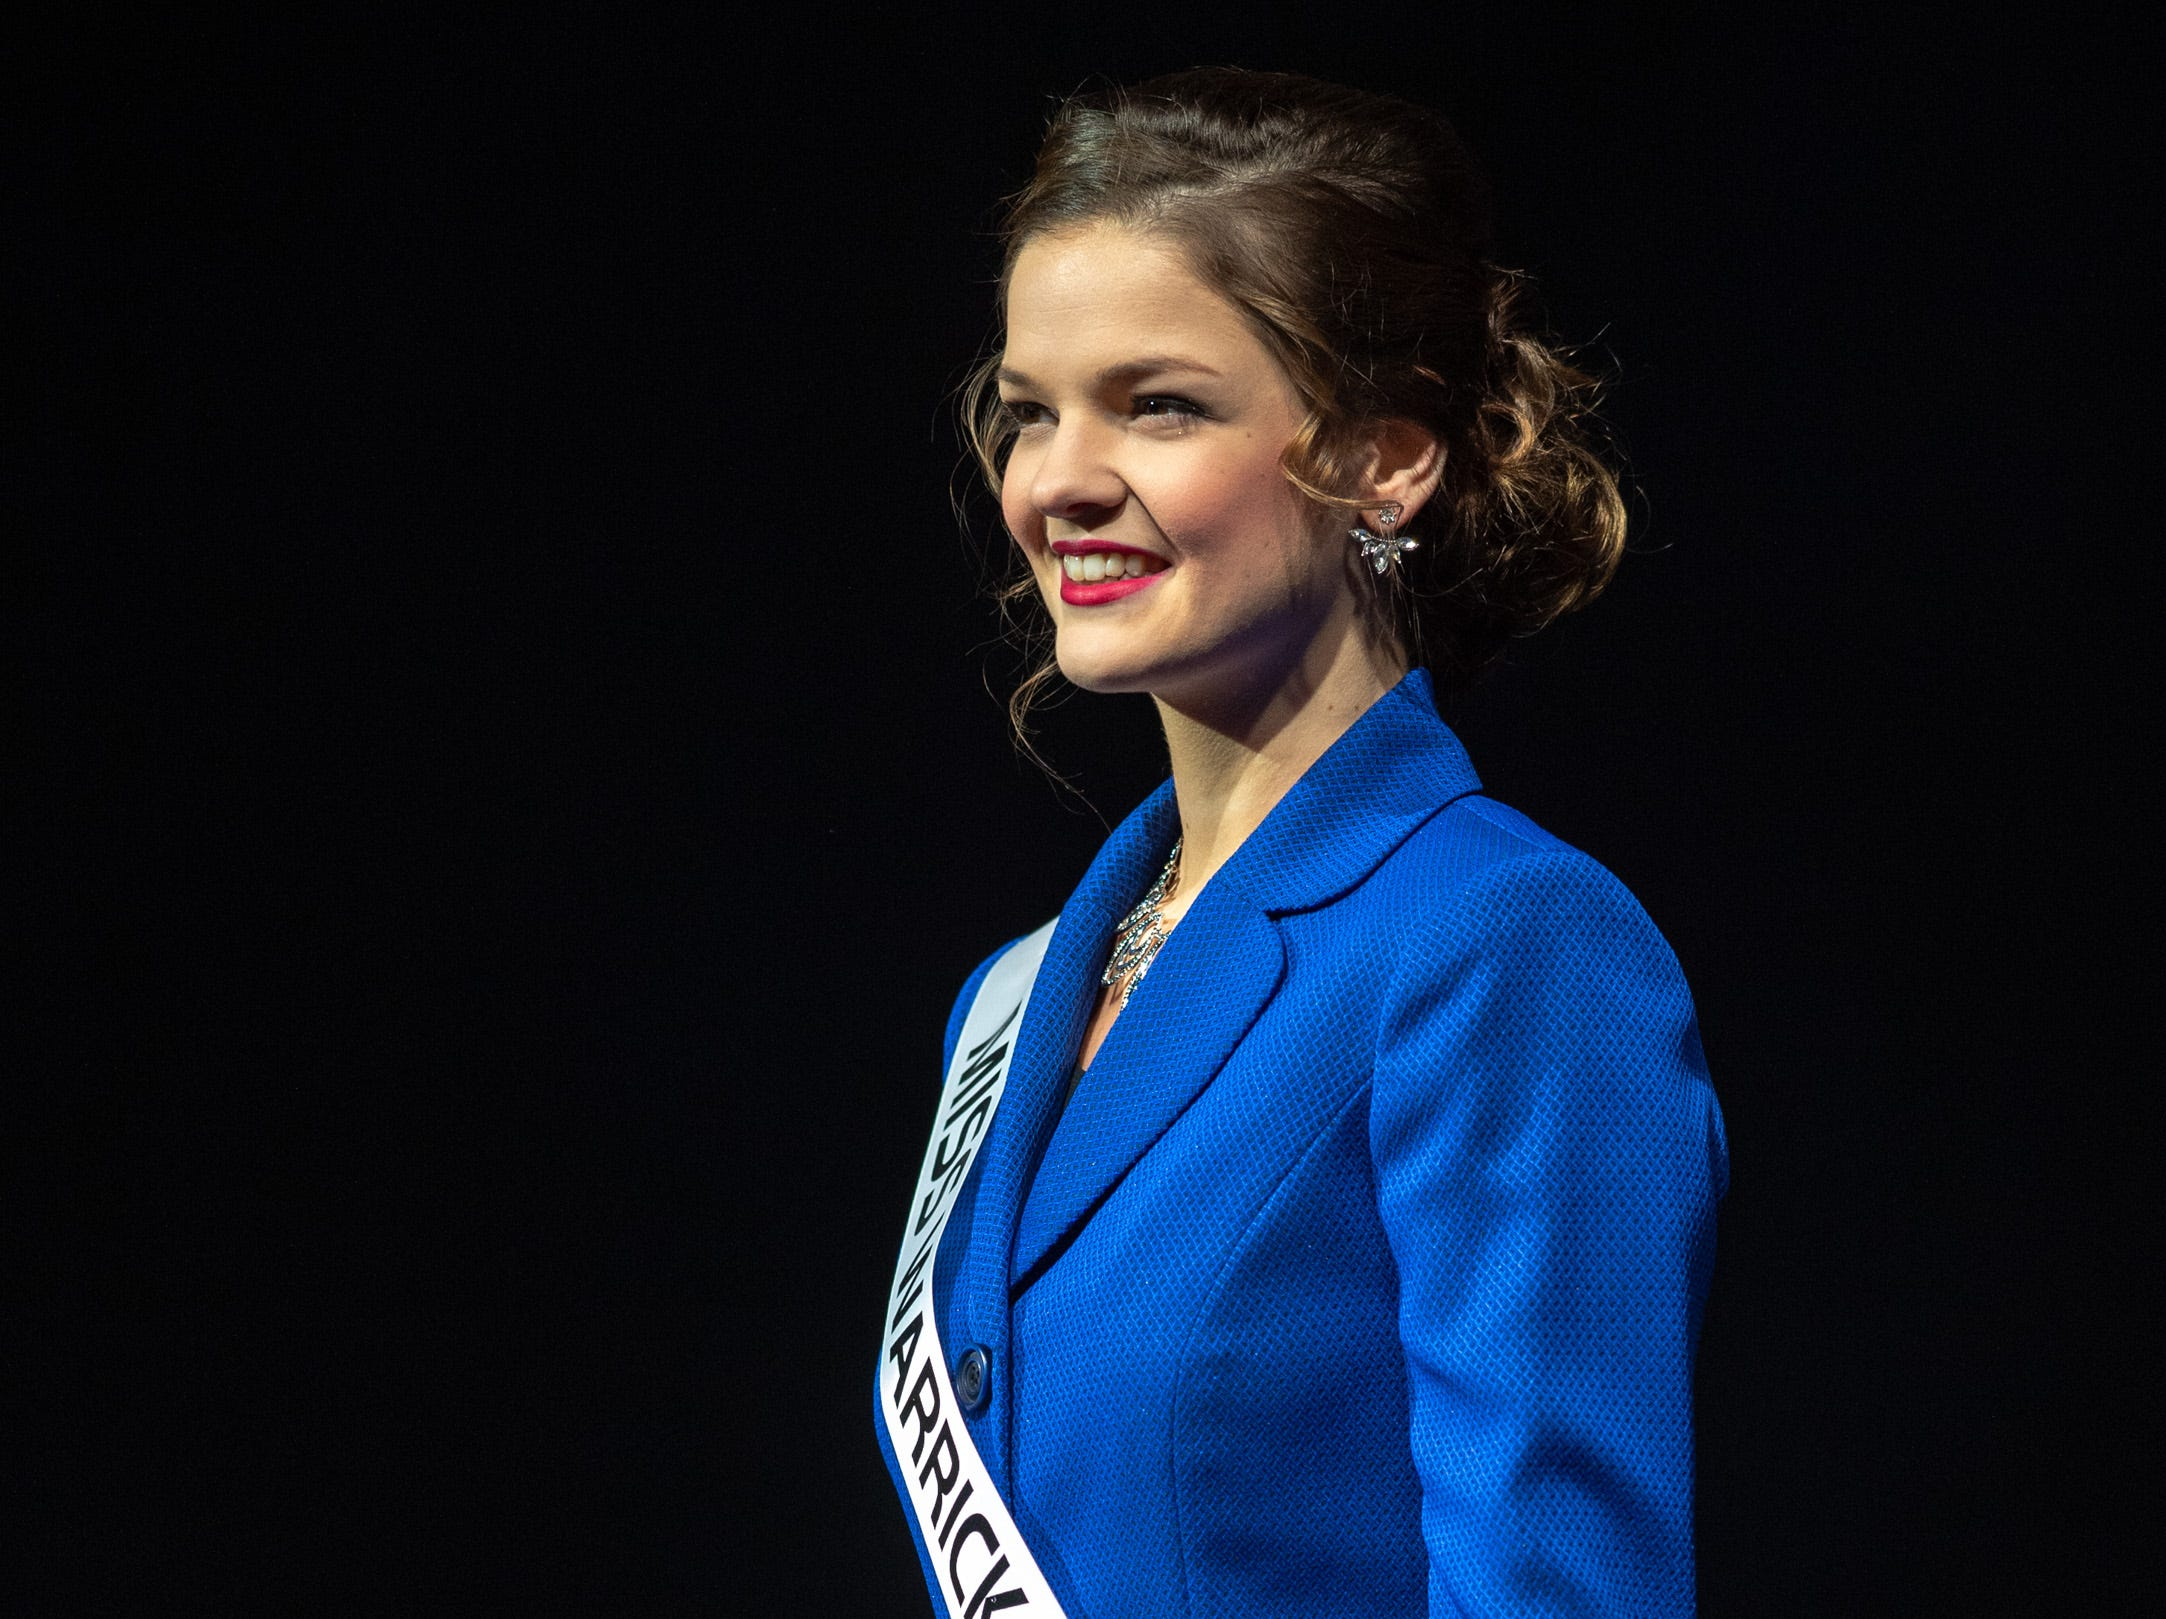 Miss Warrick County, Adrienne Rudolph, during the 61st Indiana State Fair Queen Pageant at the Indiana State Fairgrounds in Indianapolis on Sunday, Jan. 6, 2019.